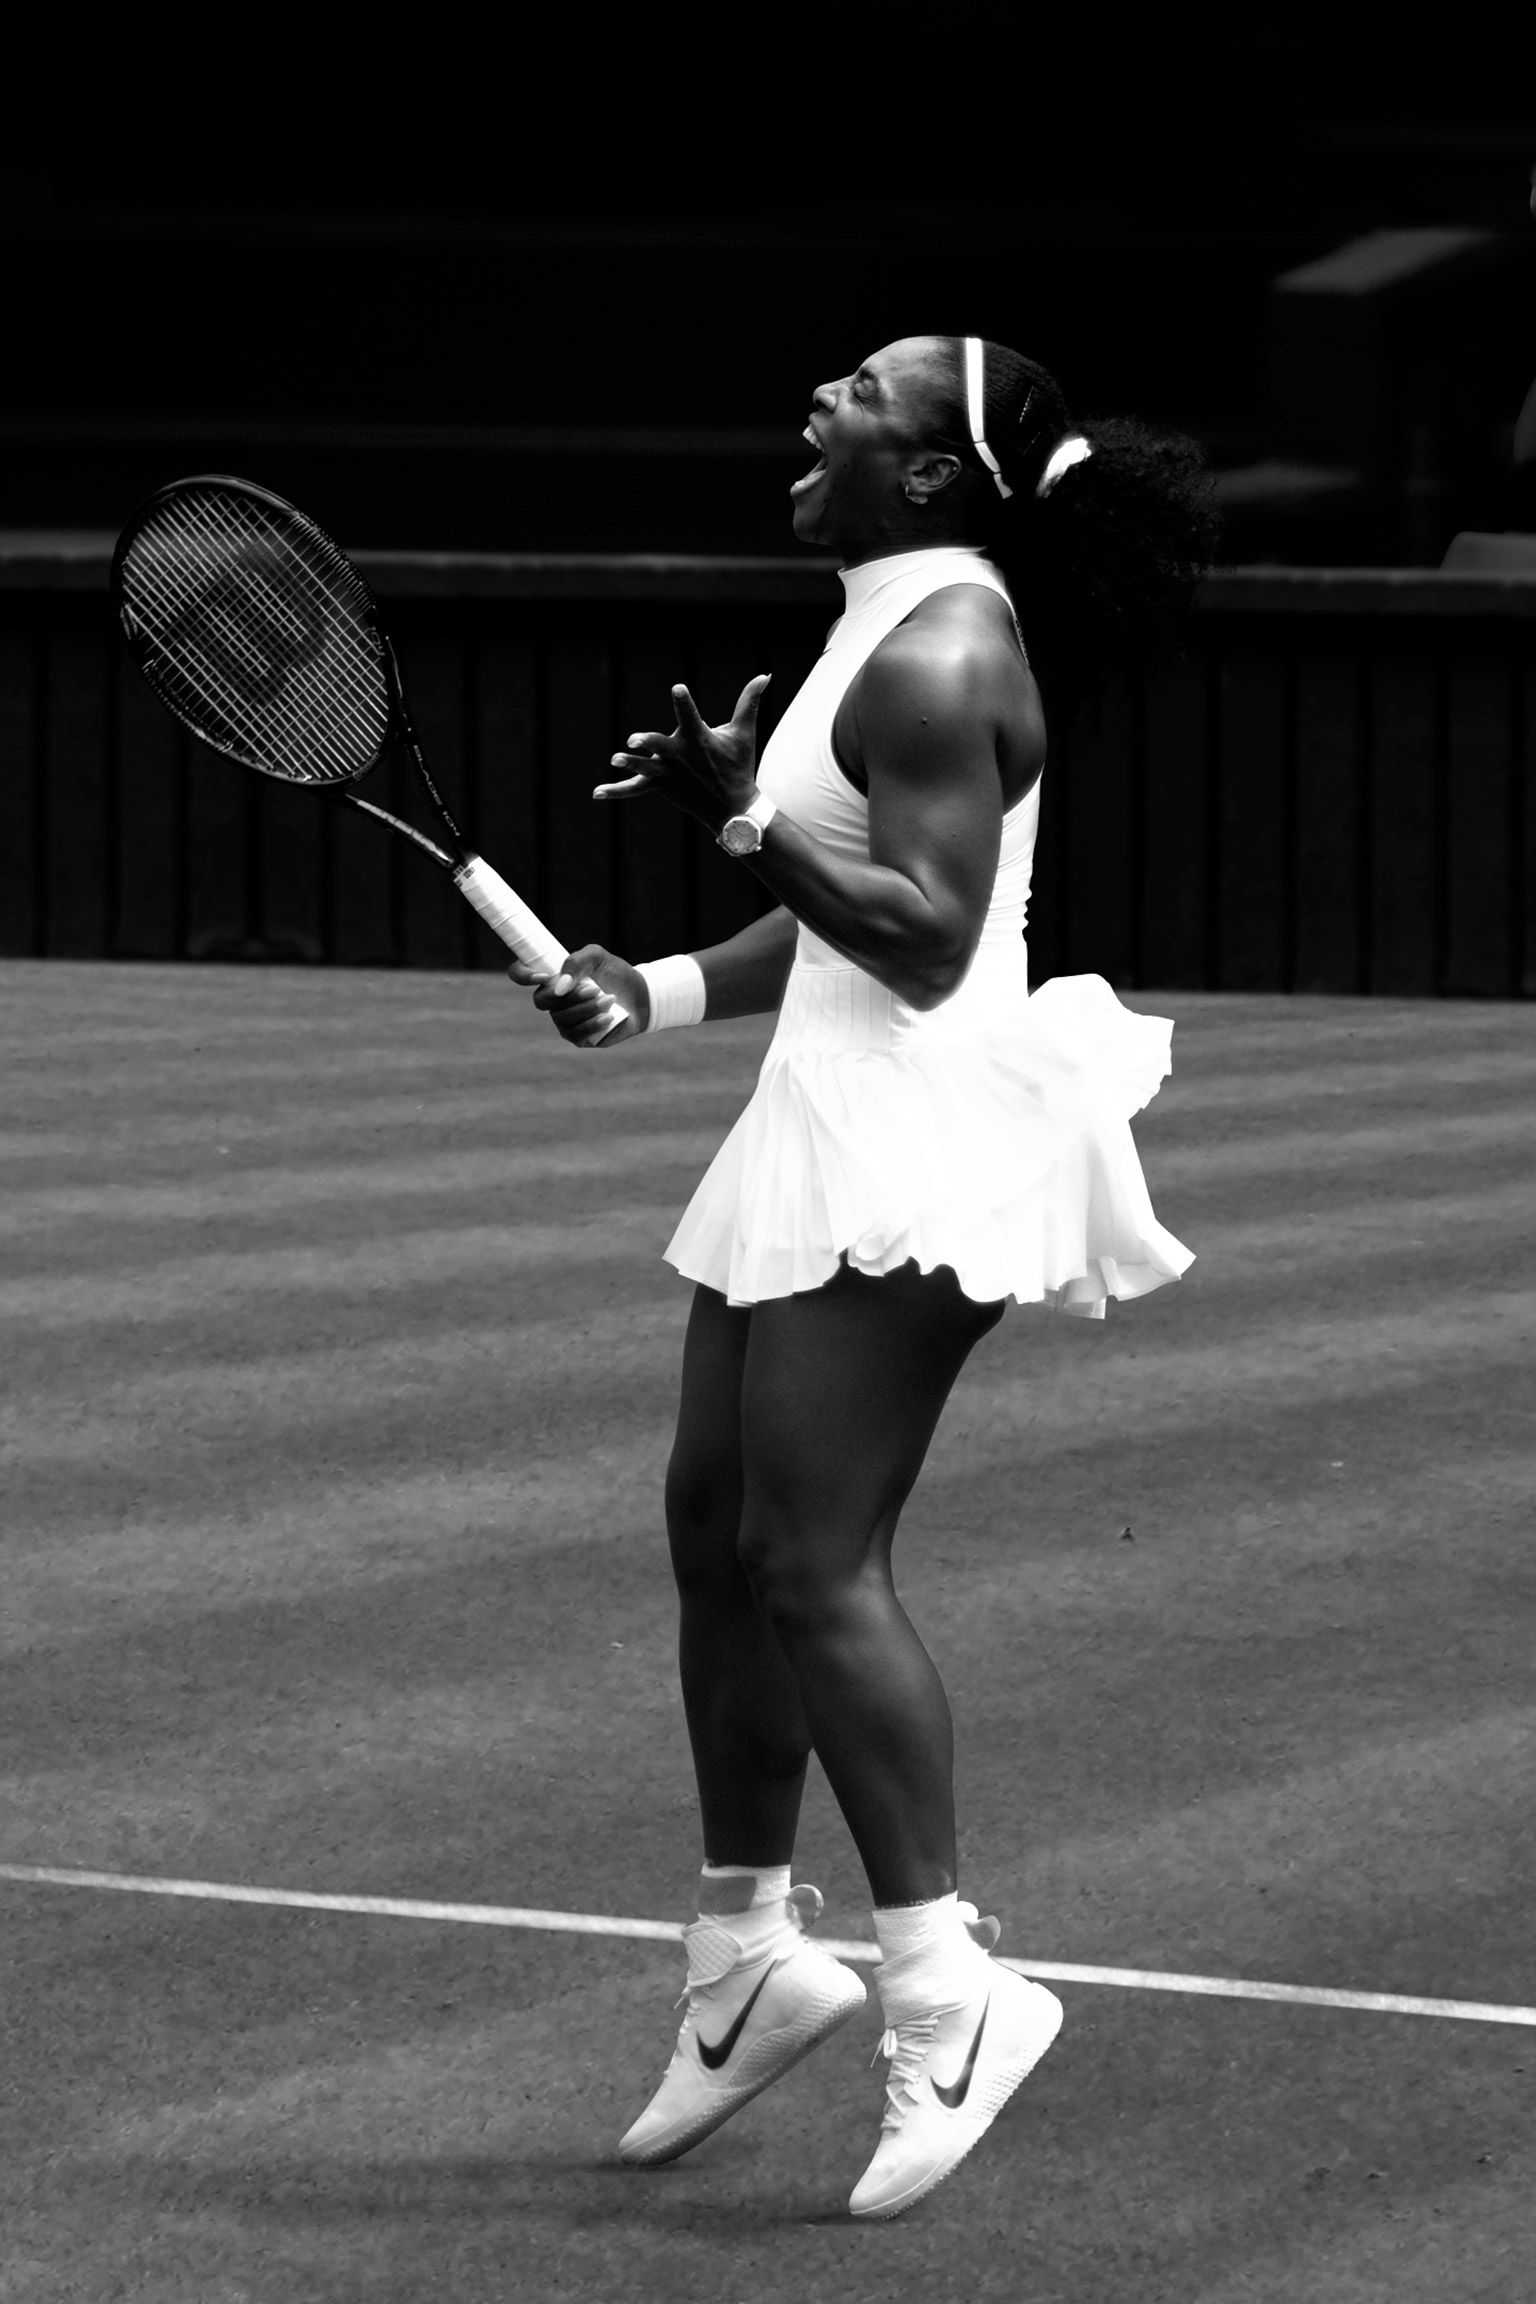 Nike Unlimited Serena Williams